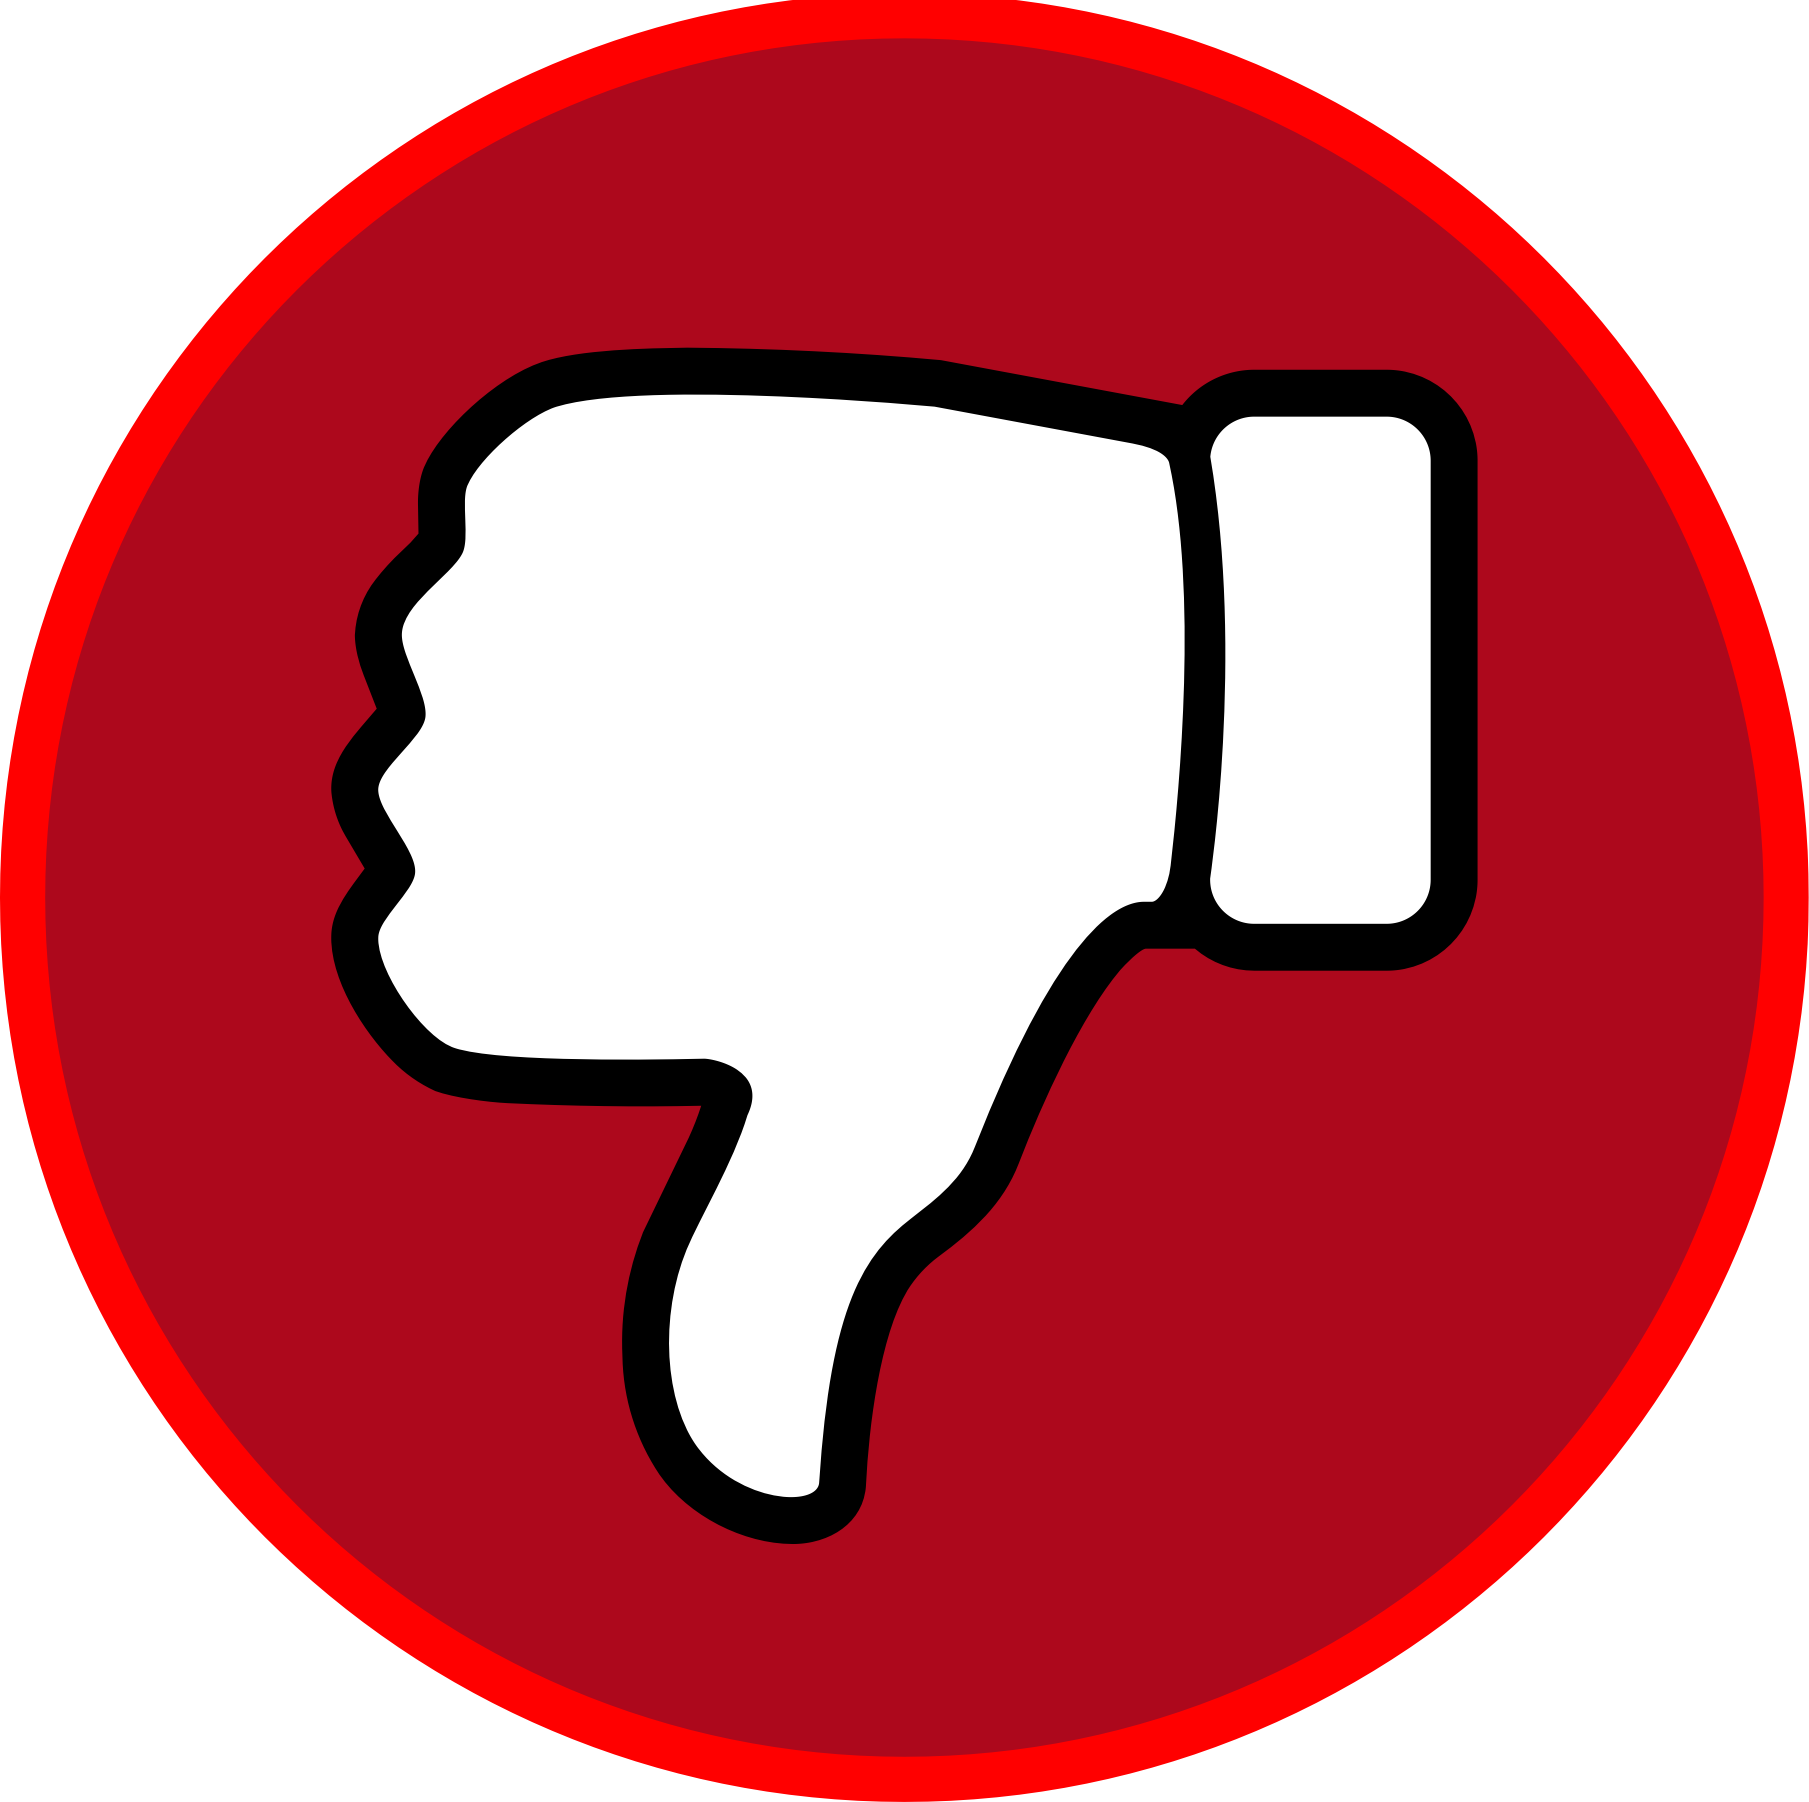 PNG Thumbs Down - 58899